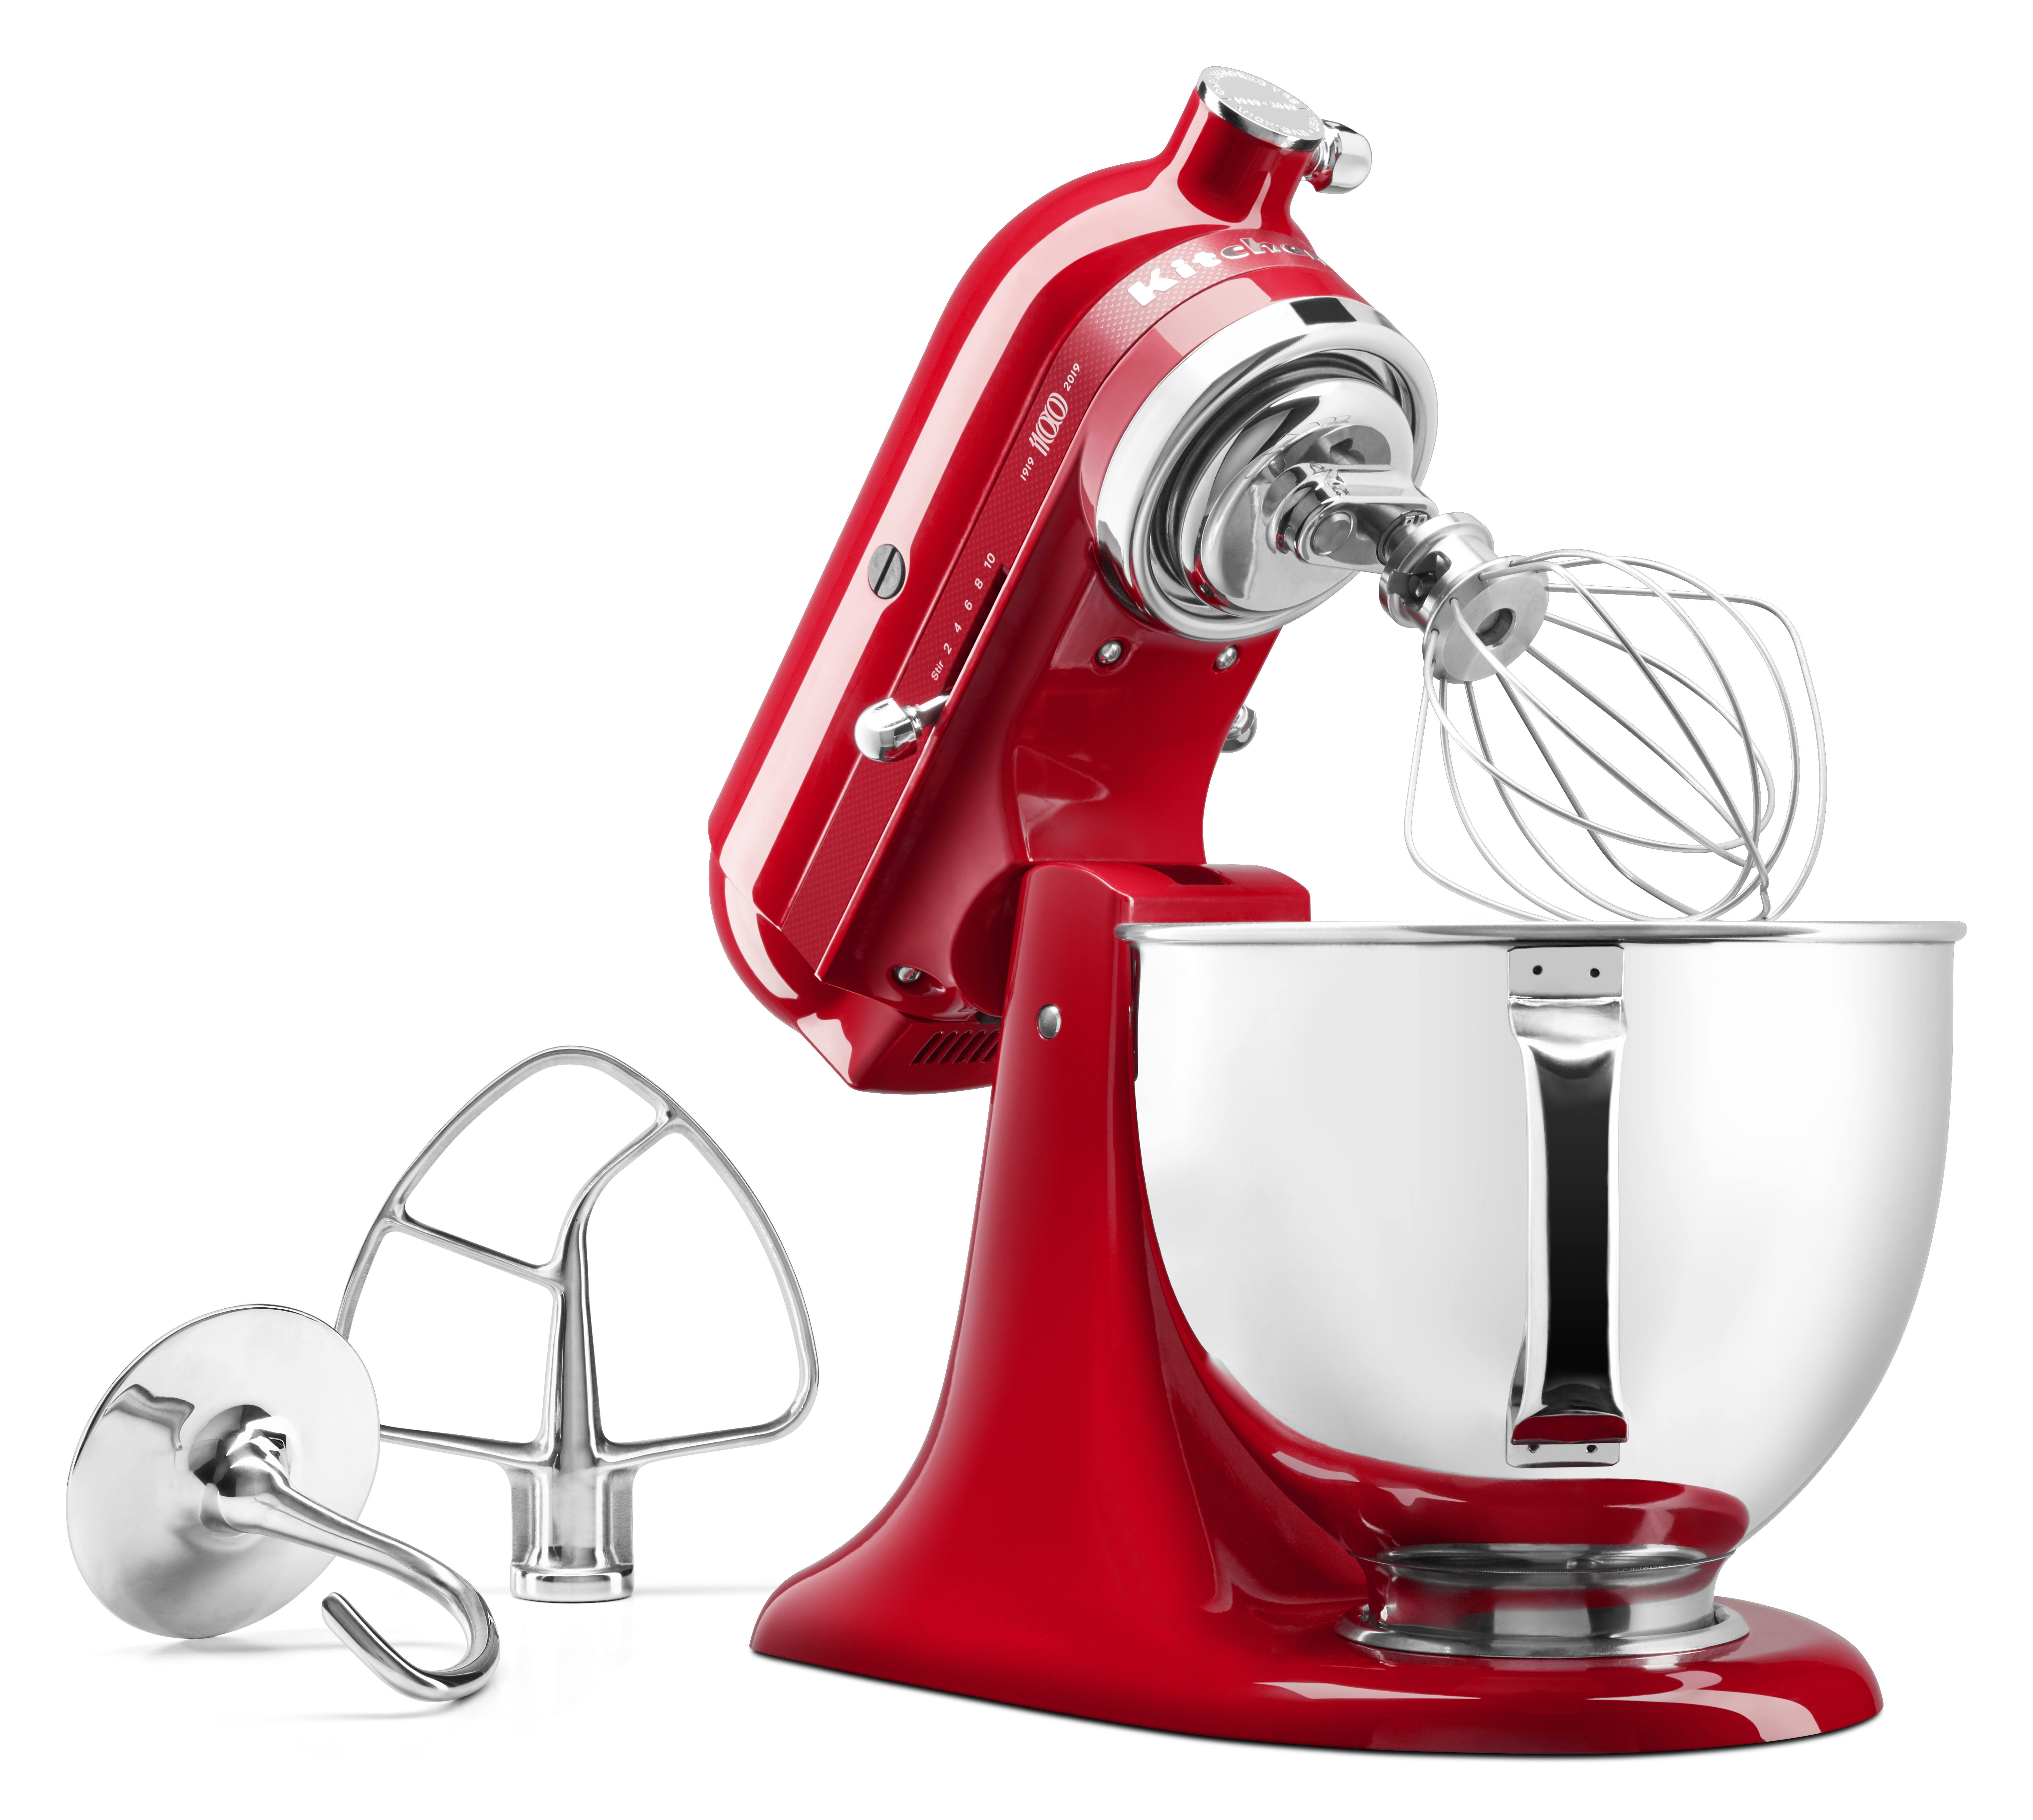 Kitchenaid Has A New Limited Edition Stand Mixer Color Kitchn